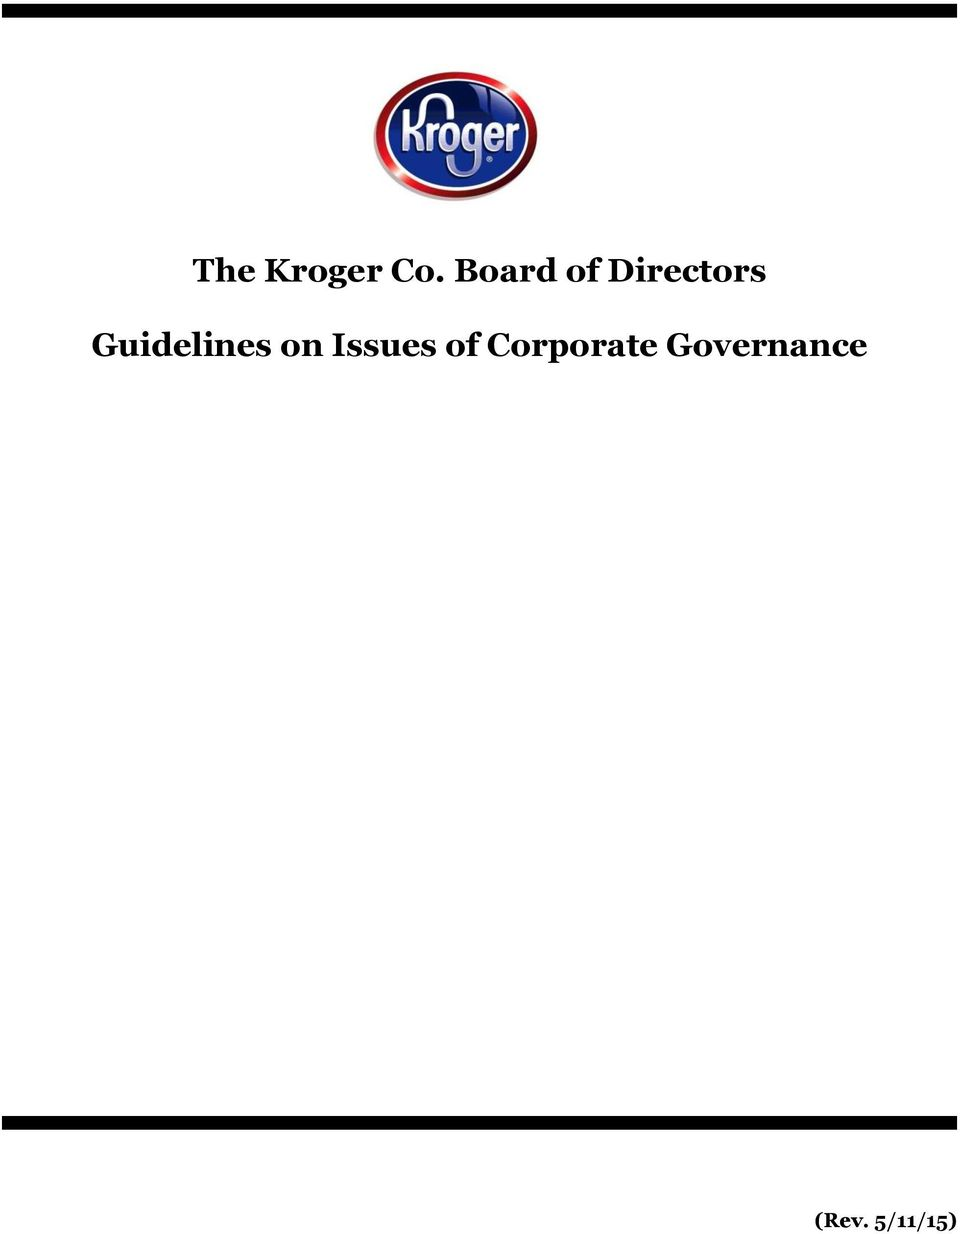 Guidelines on Issues of